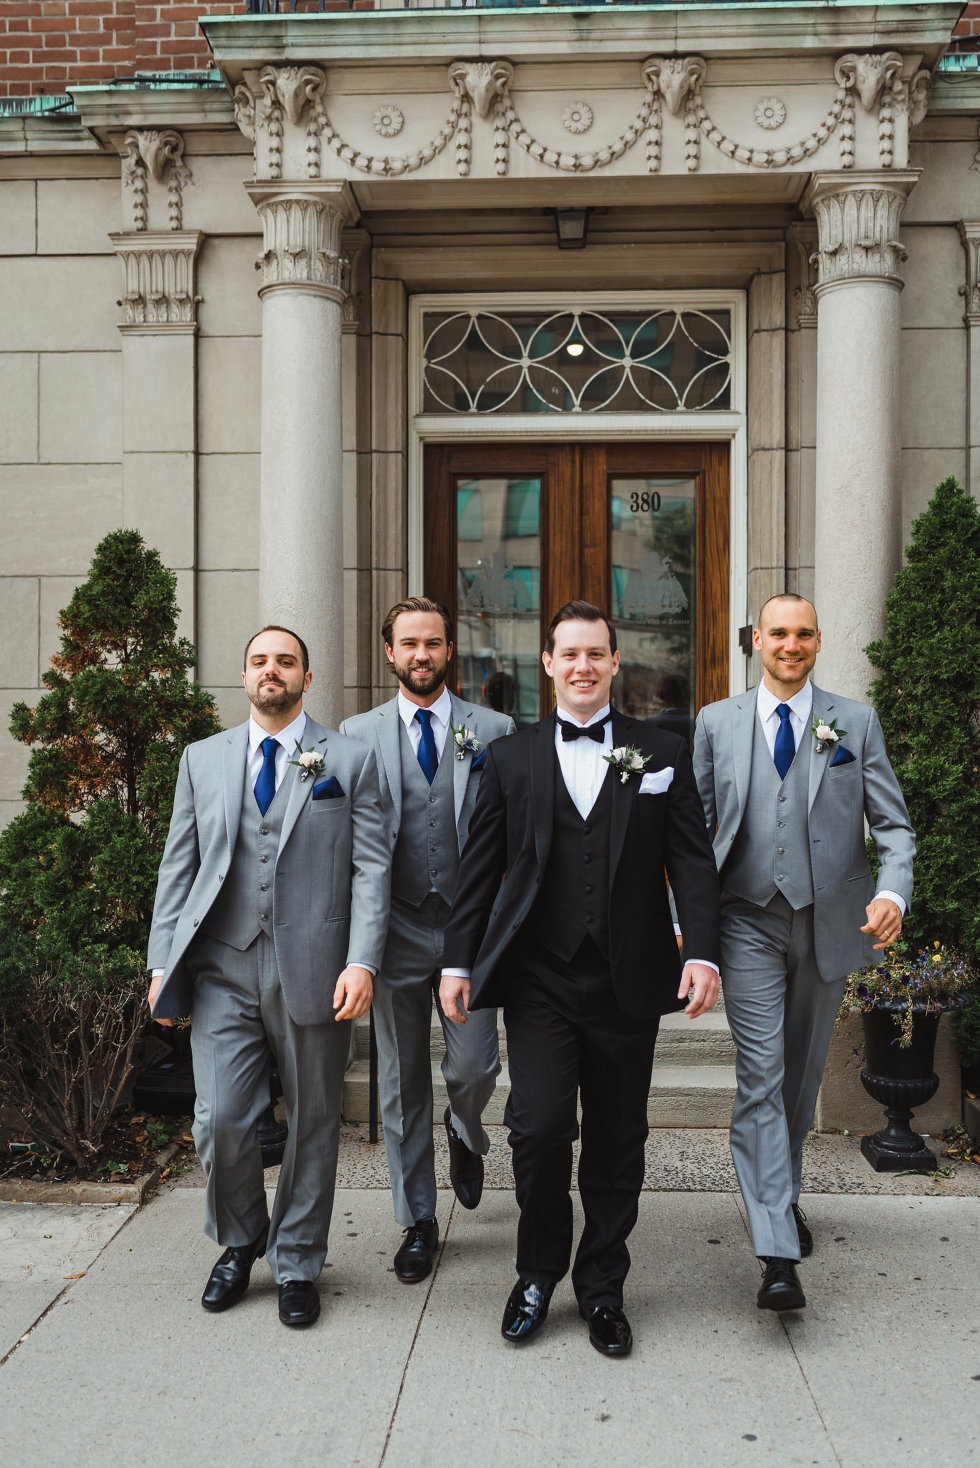 groom in black tuxedo and bowtie walking with his groomsmen in grey suits out of an old building in Toronto before amazing iconic downtown wedding